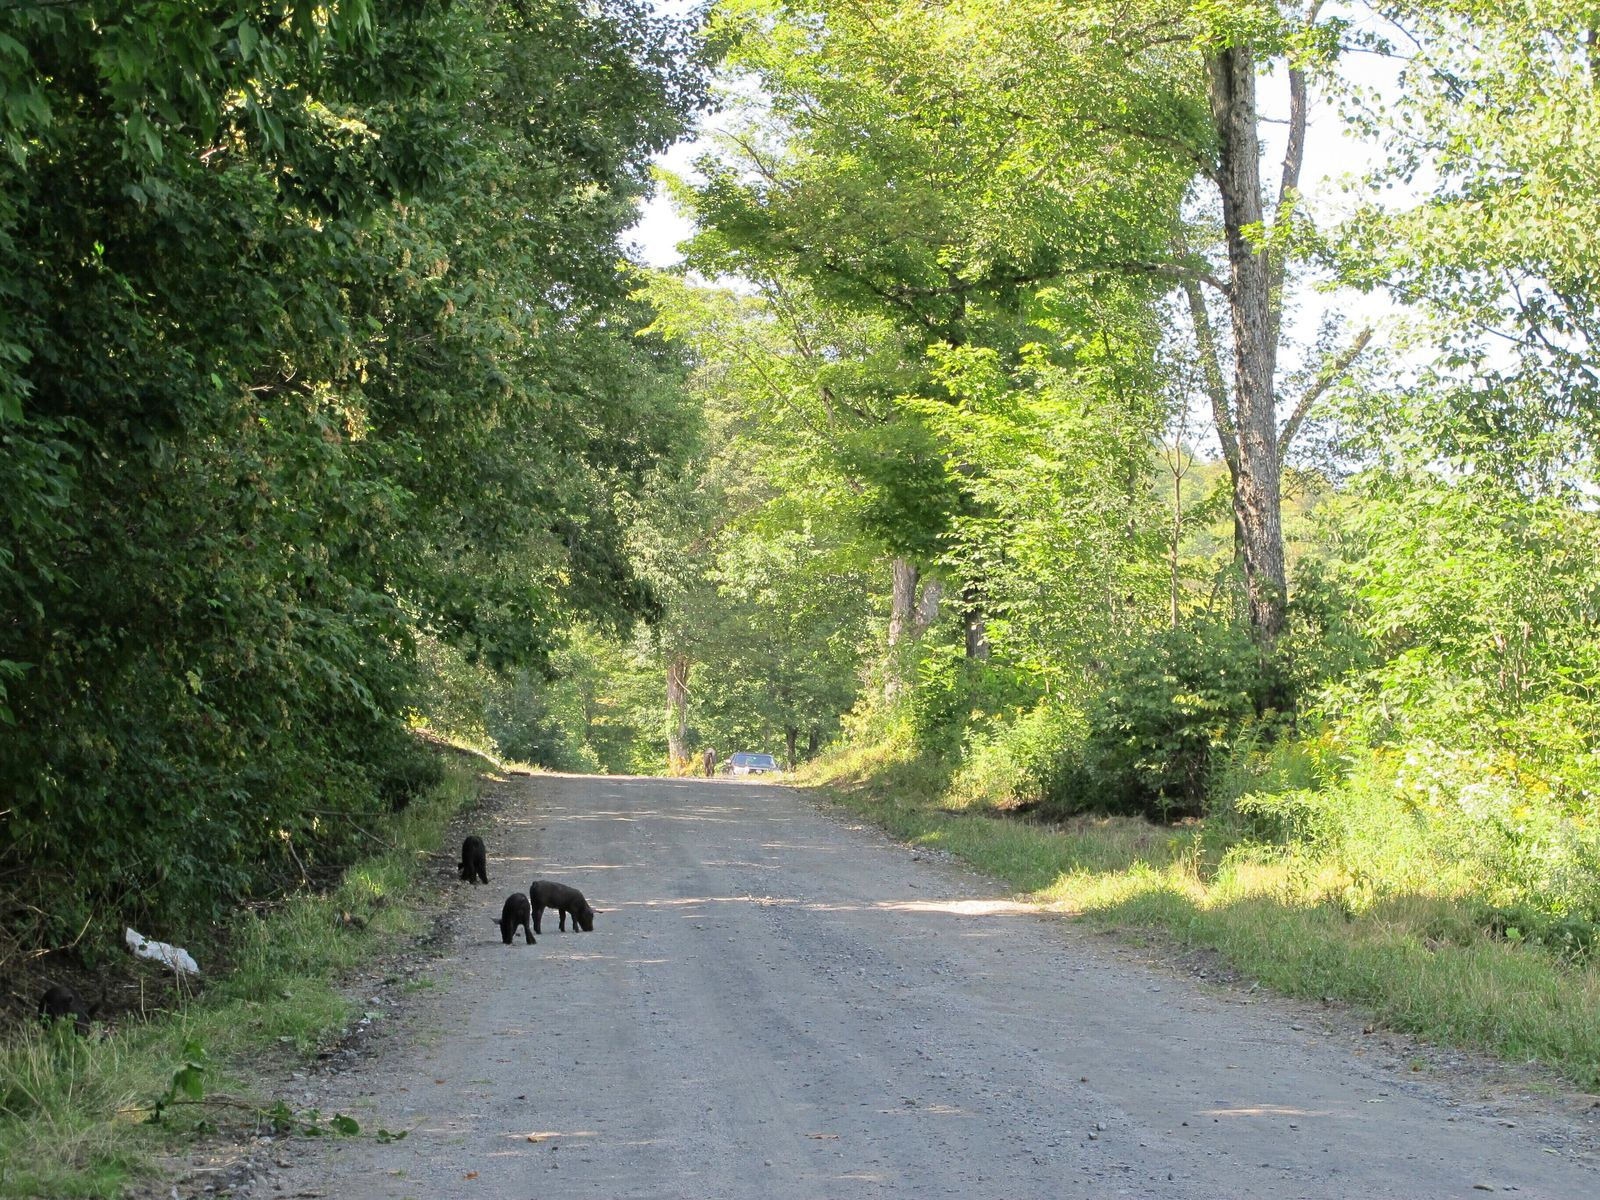 Piglets that escaped from a farm's fencing in Orange, Vt., walk up the road toward the farm on Thursday, Aug. 29, 2019. (AP Photo/Lisa Rathke)